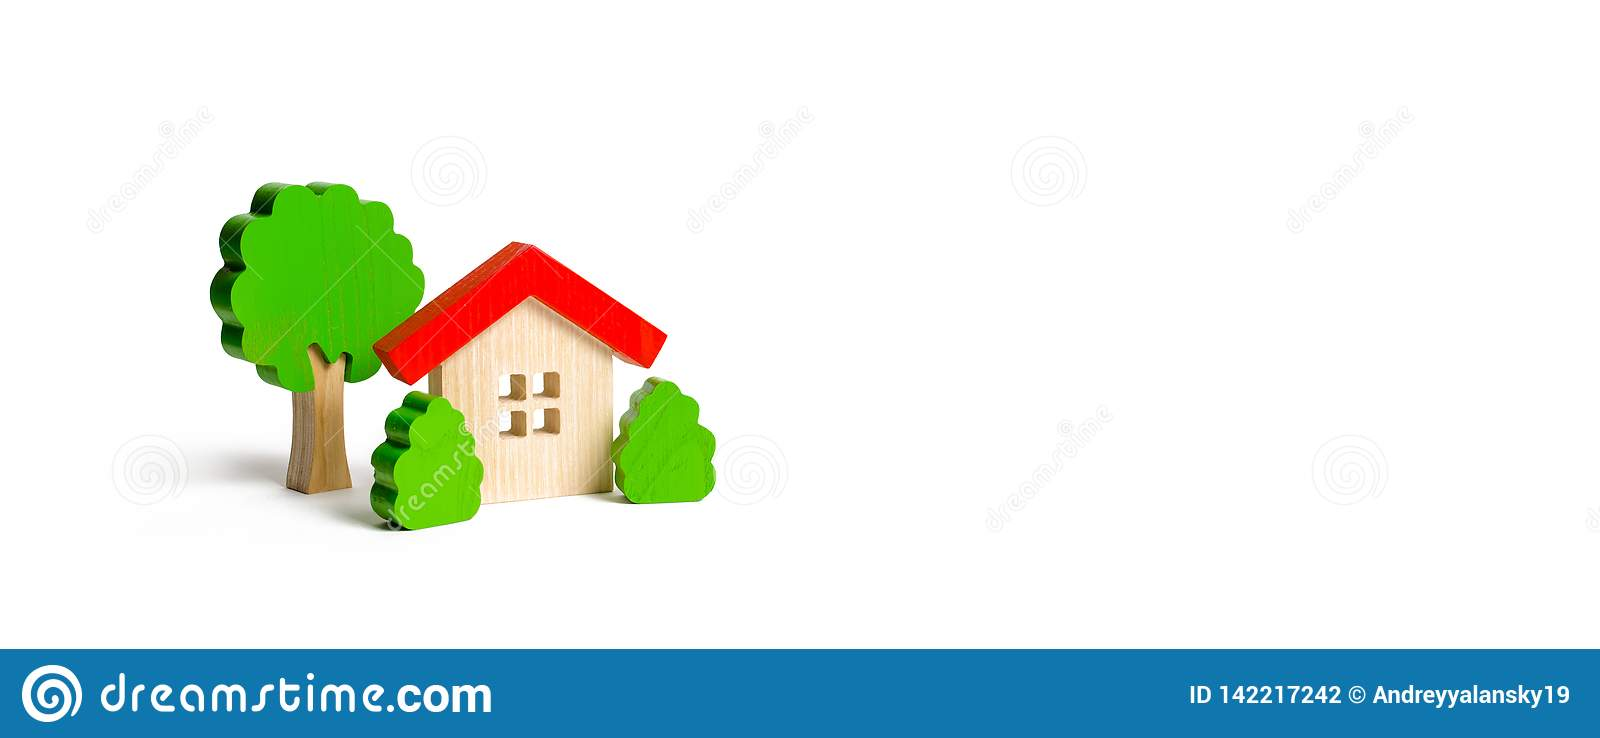 Wooden hut and tree figurines with bushes on an isolated background. The concept of a love nest. Acquisition of affordable housing